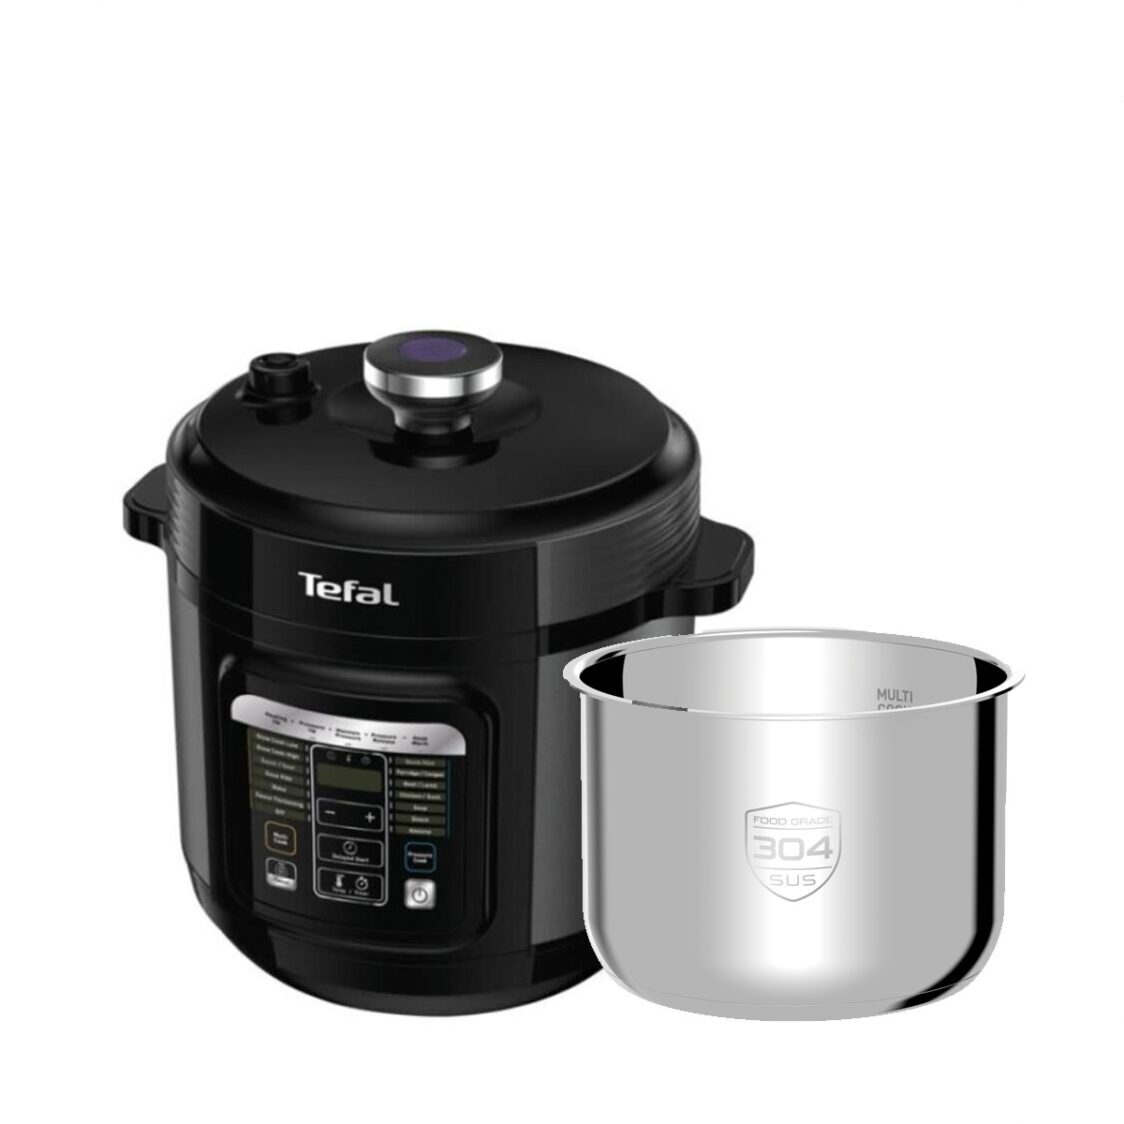 Tefal Home Chef Smart Pro Multicooker 6L  Additional Inner Pot CY601  XA622